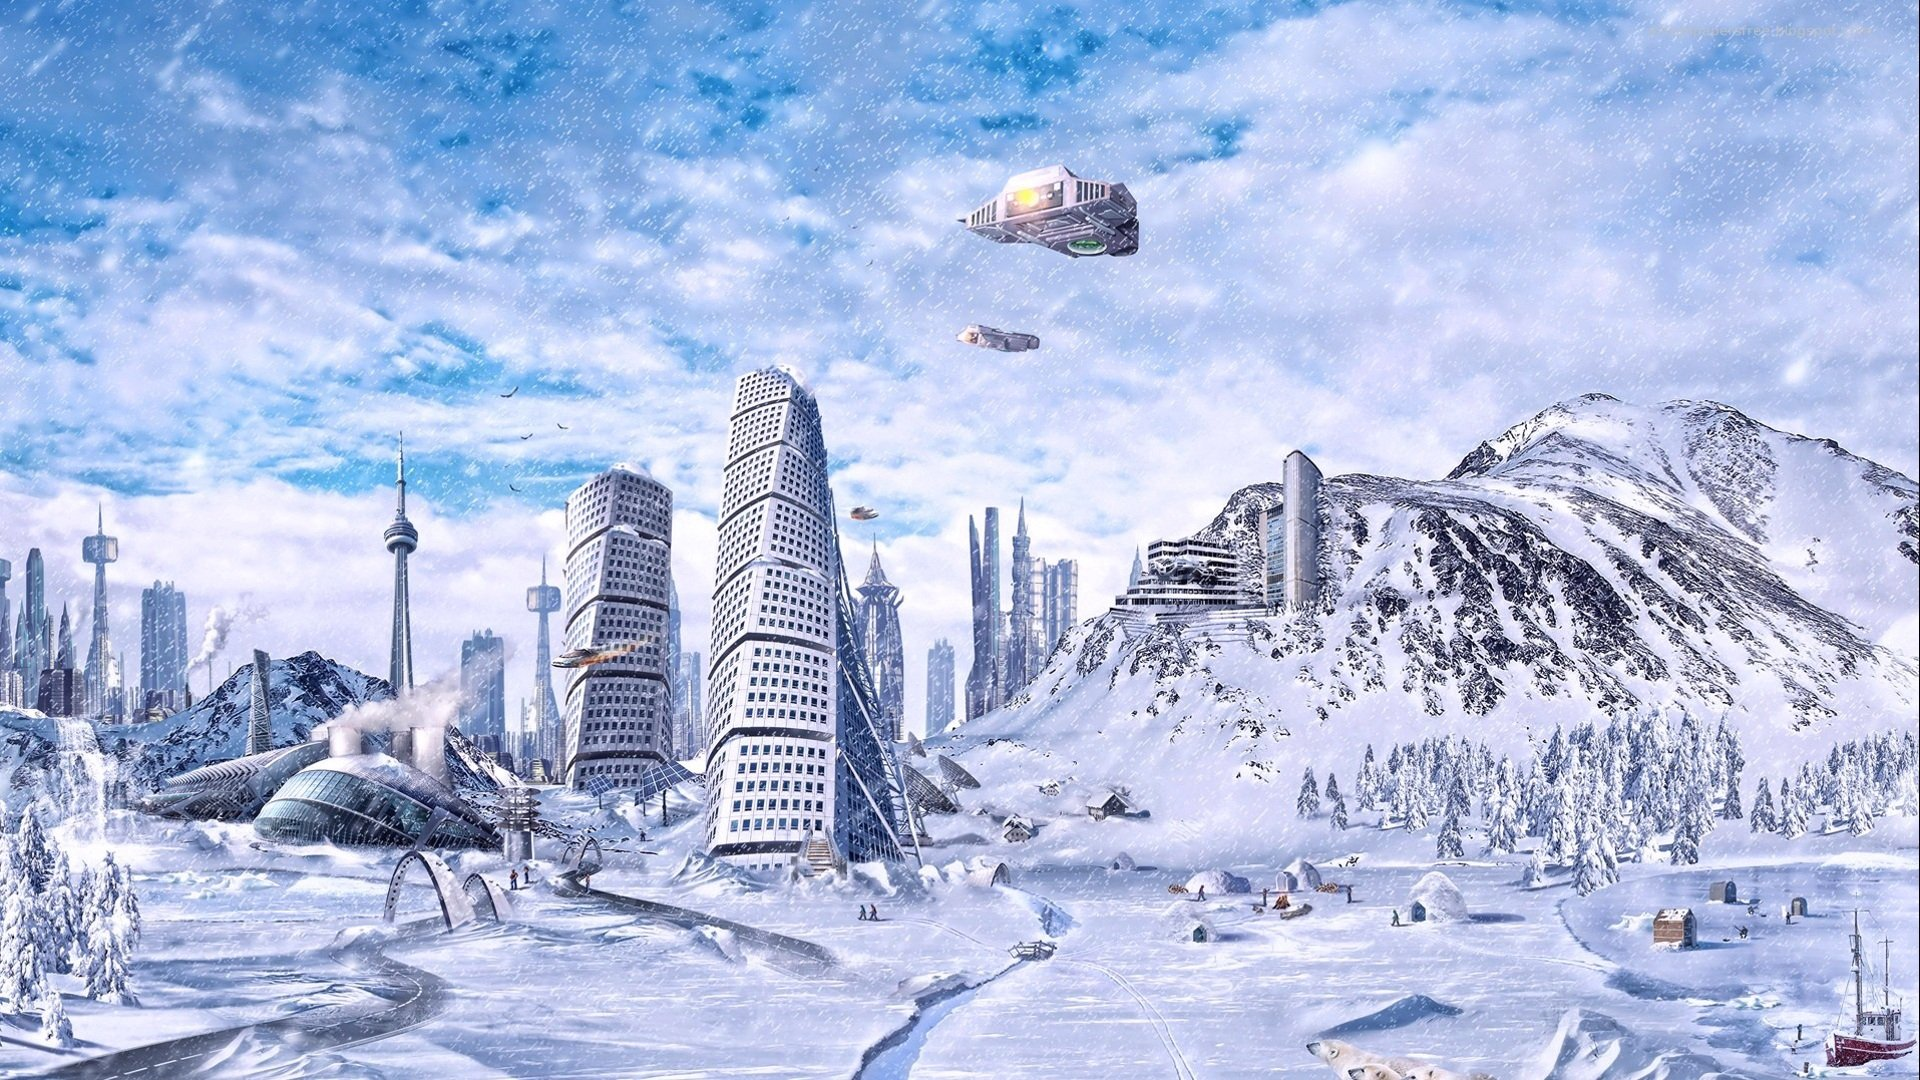 3d ice age future fantasy city hd wallpaper. Black Bedroom Furniture Sets. Home Design Ideas